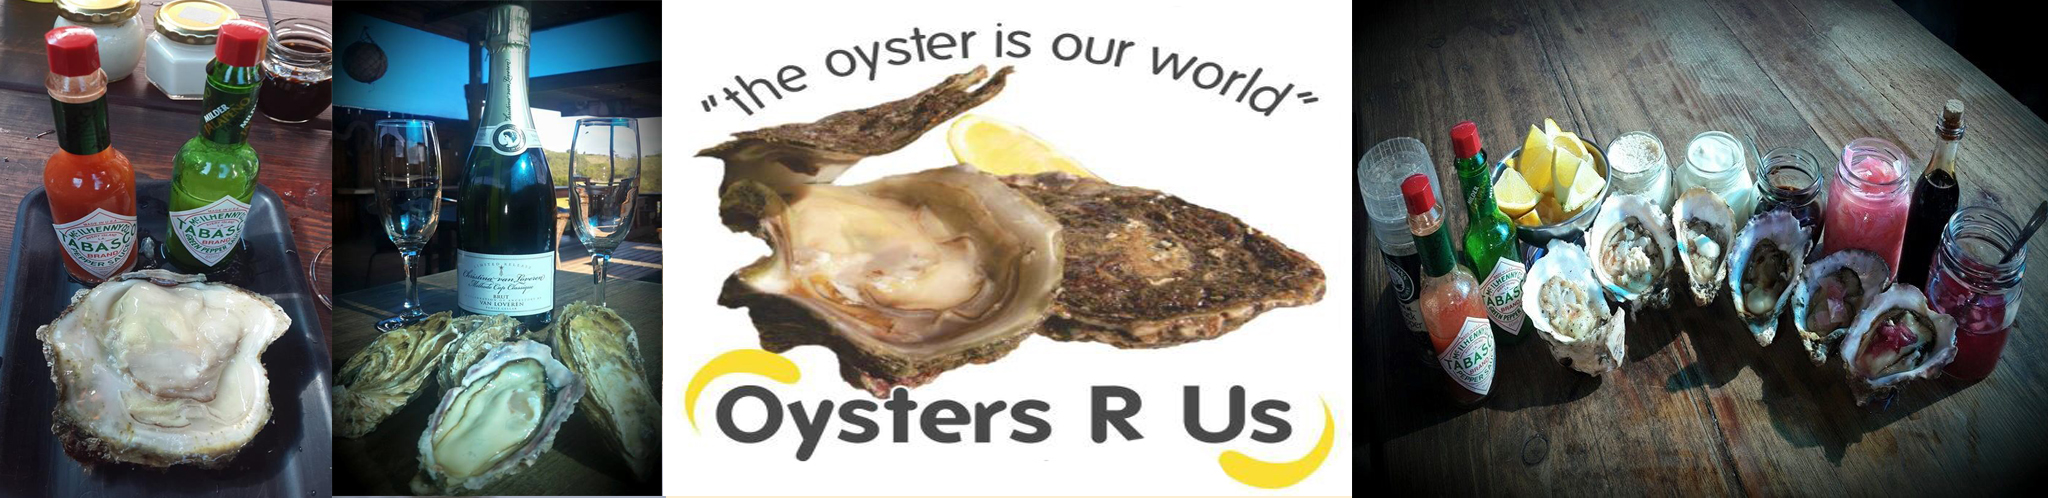 oysters-r-us